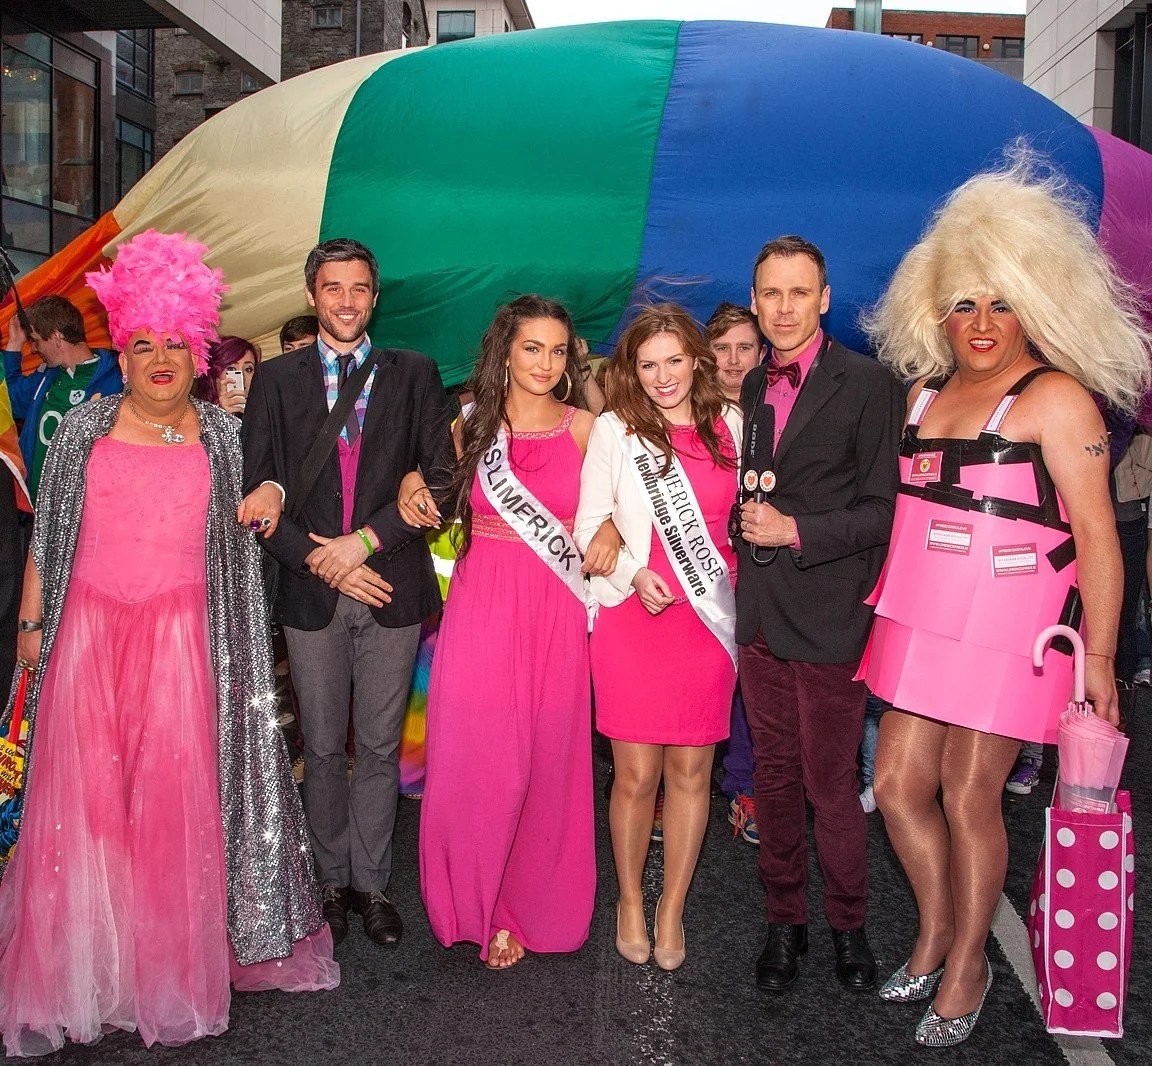 Co Limerick Gay Personals, Co Limerick Gay Dating - Mingle2